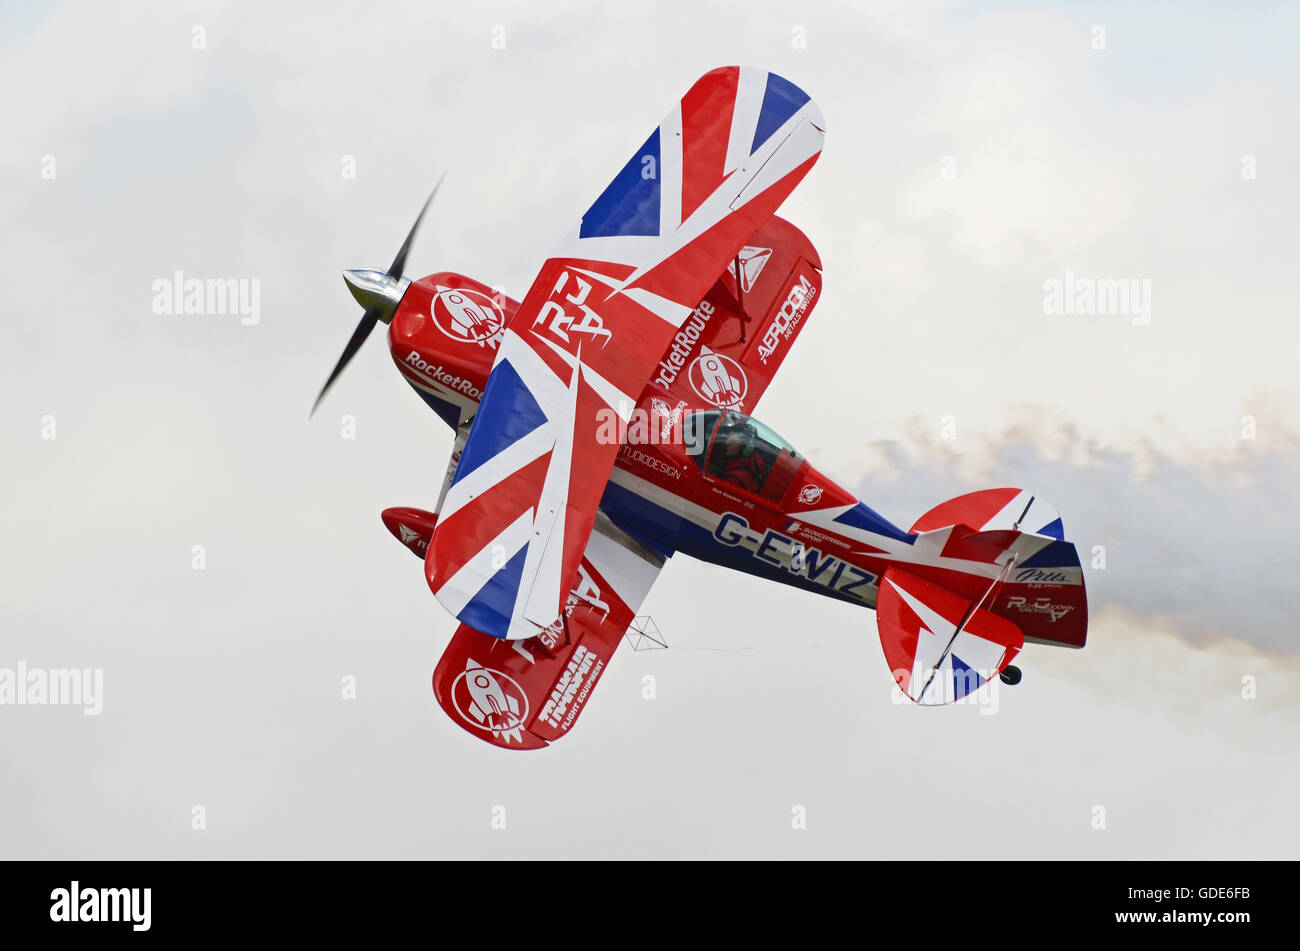 farnborough-airshow-2016-richard-goodwin-flying-pitts-special-plane-GDE6FB.jpg